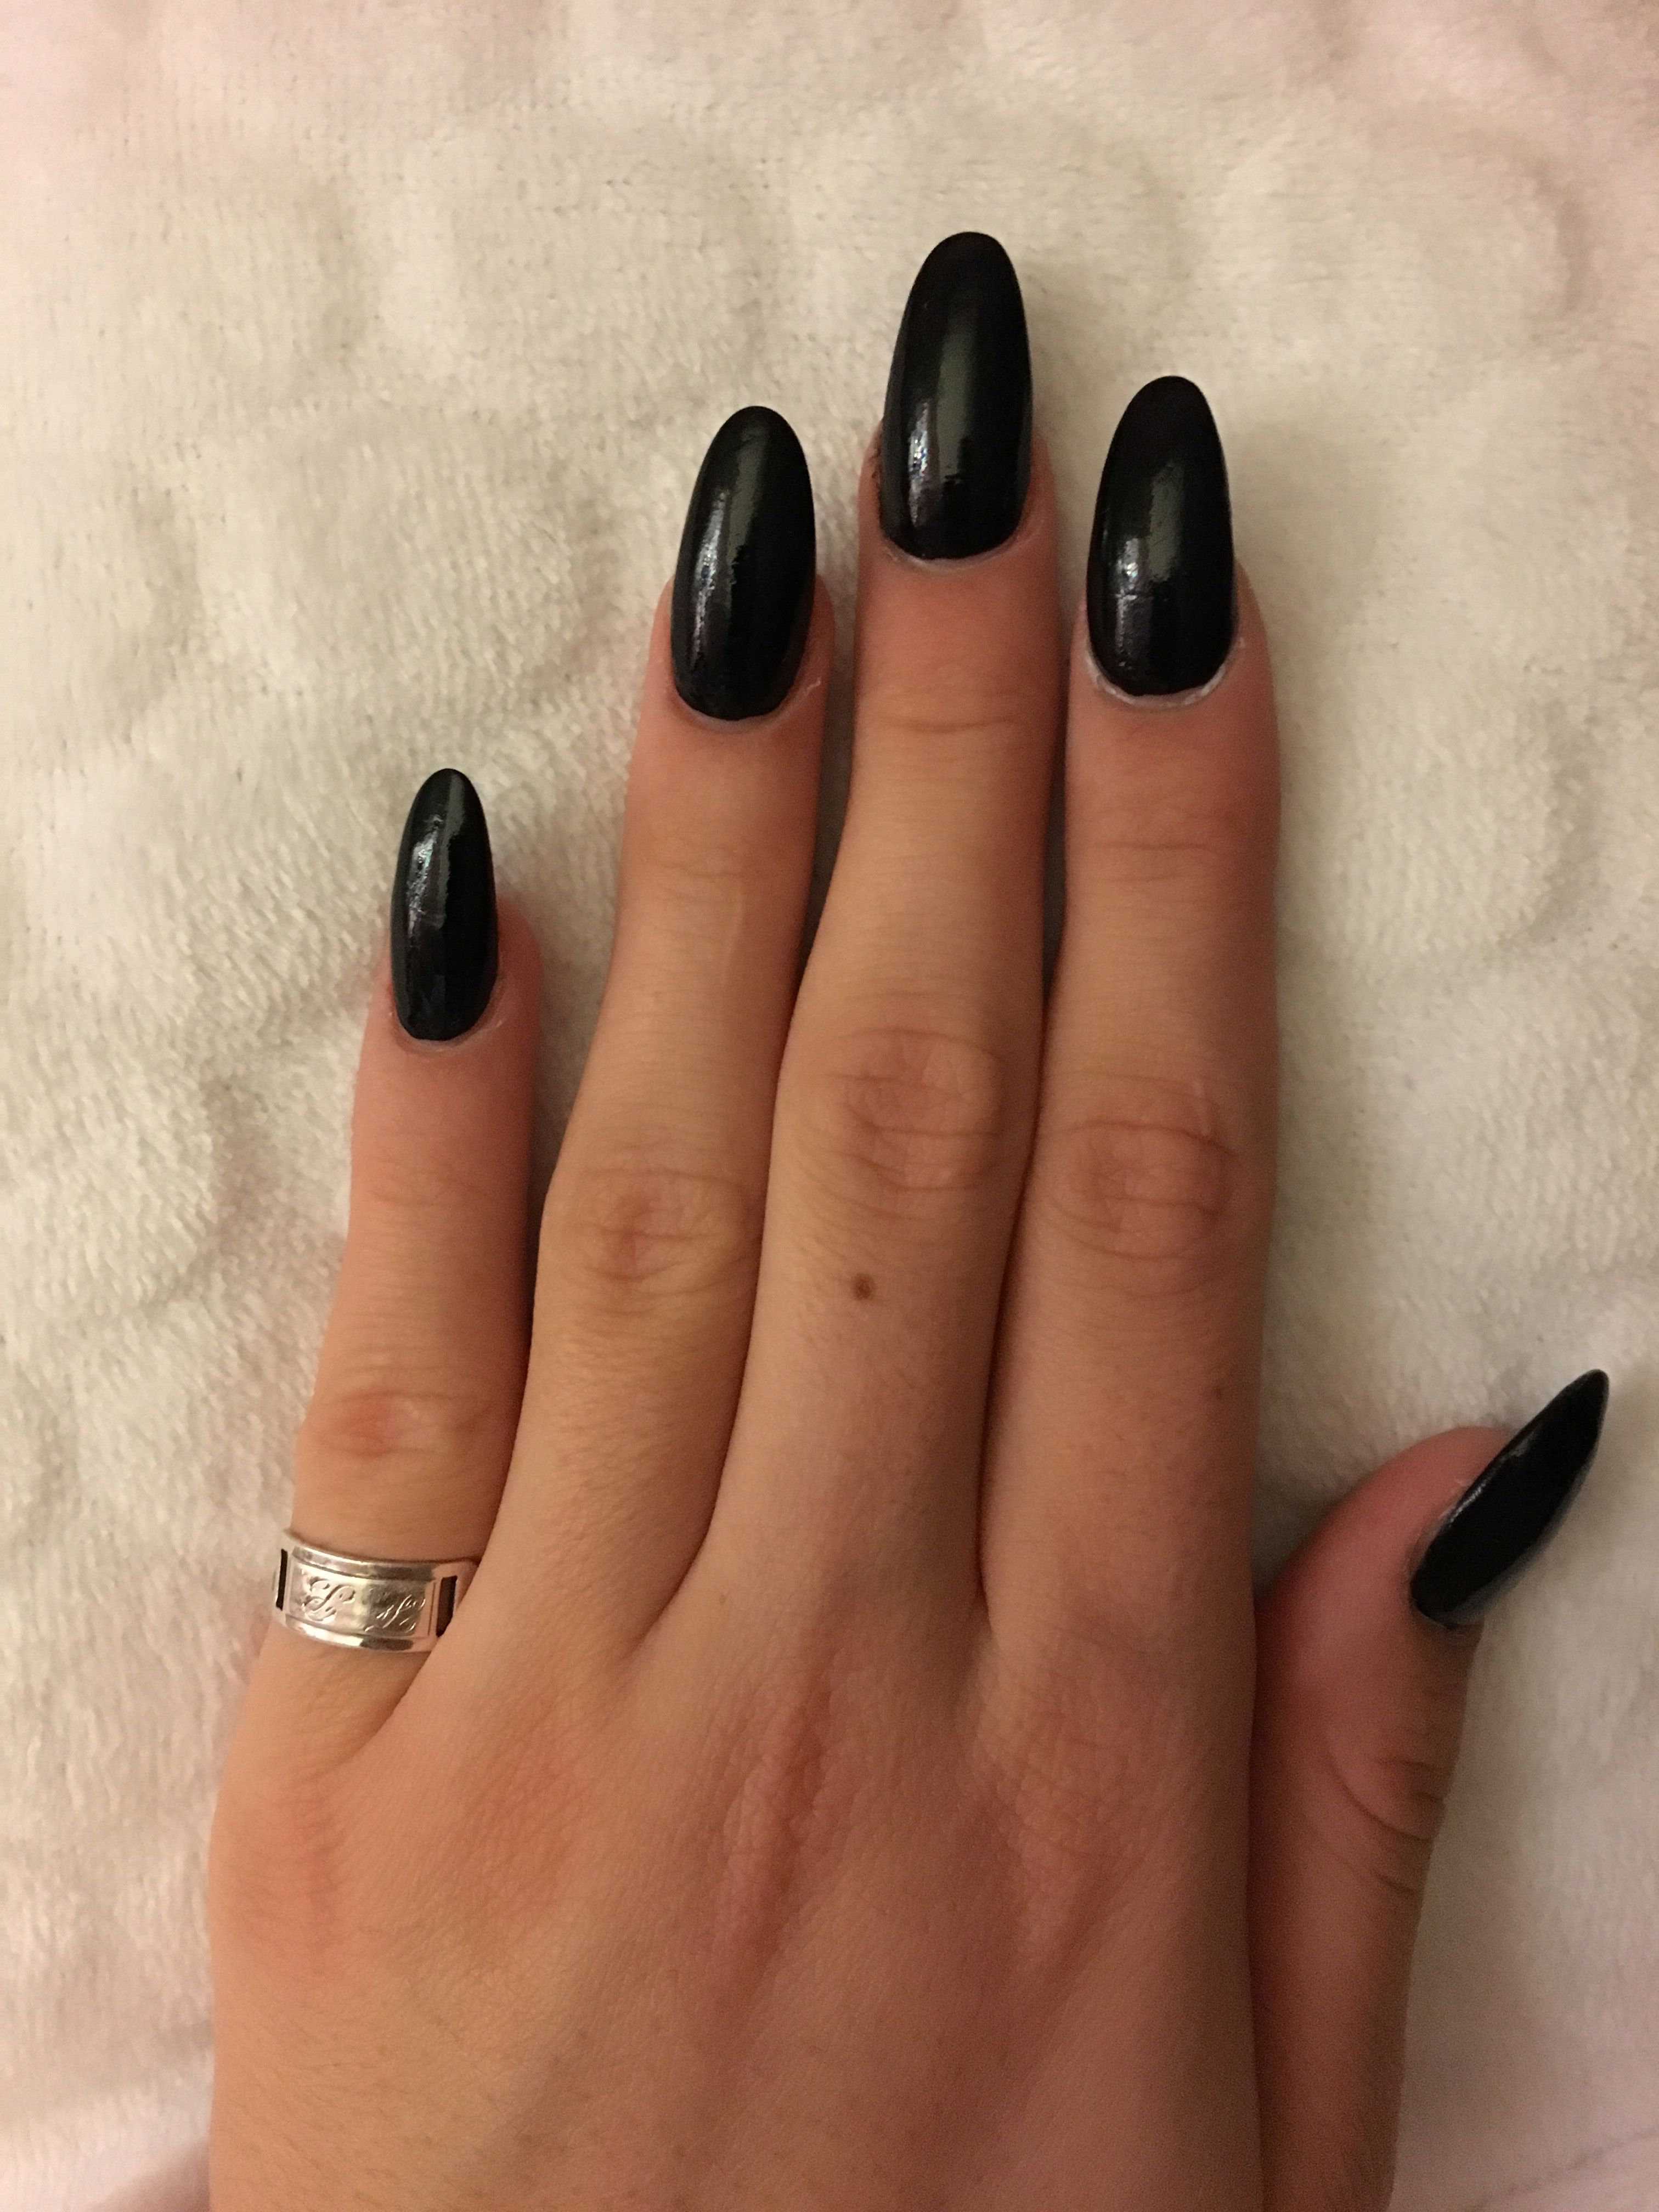 Almond Shaped Black Acrylic Nails Long Pointed